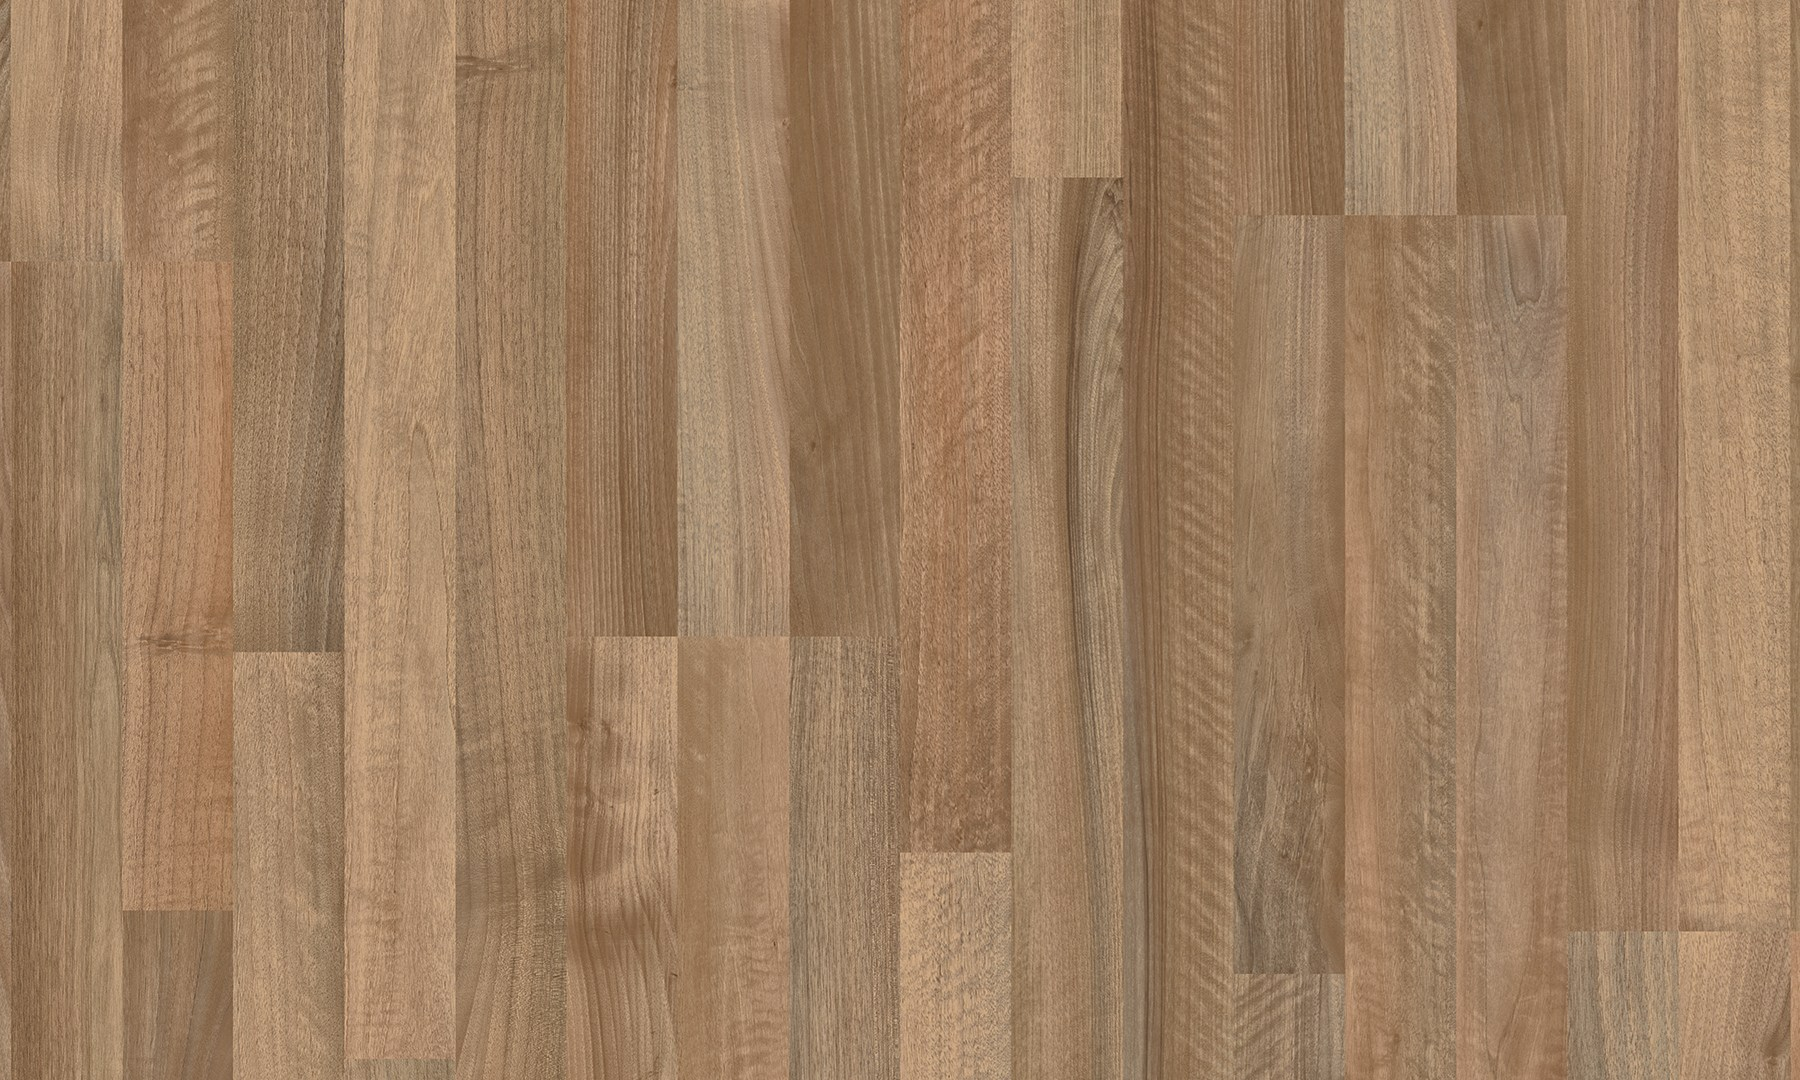 Laminate Flooring Soft Walnut 3 Strip By Pergo